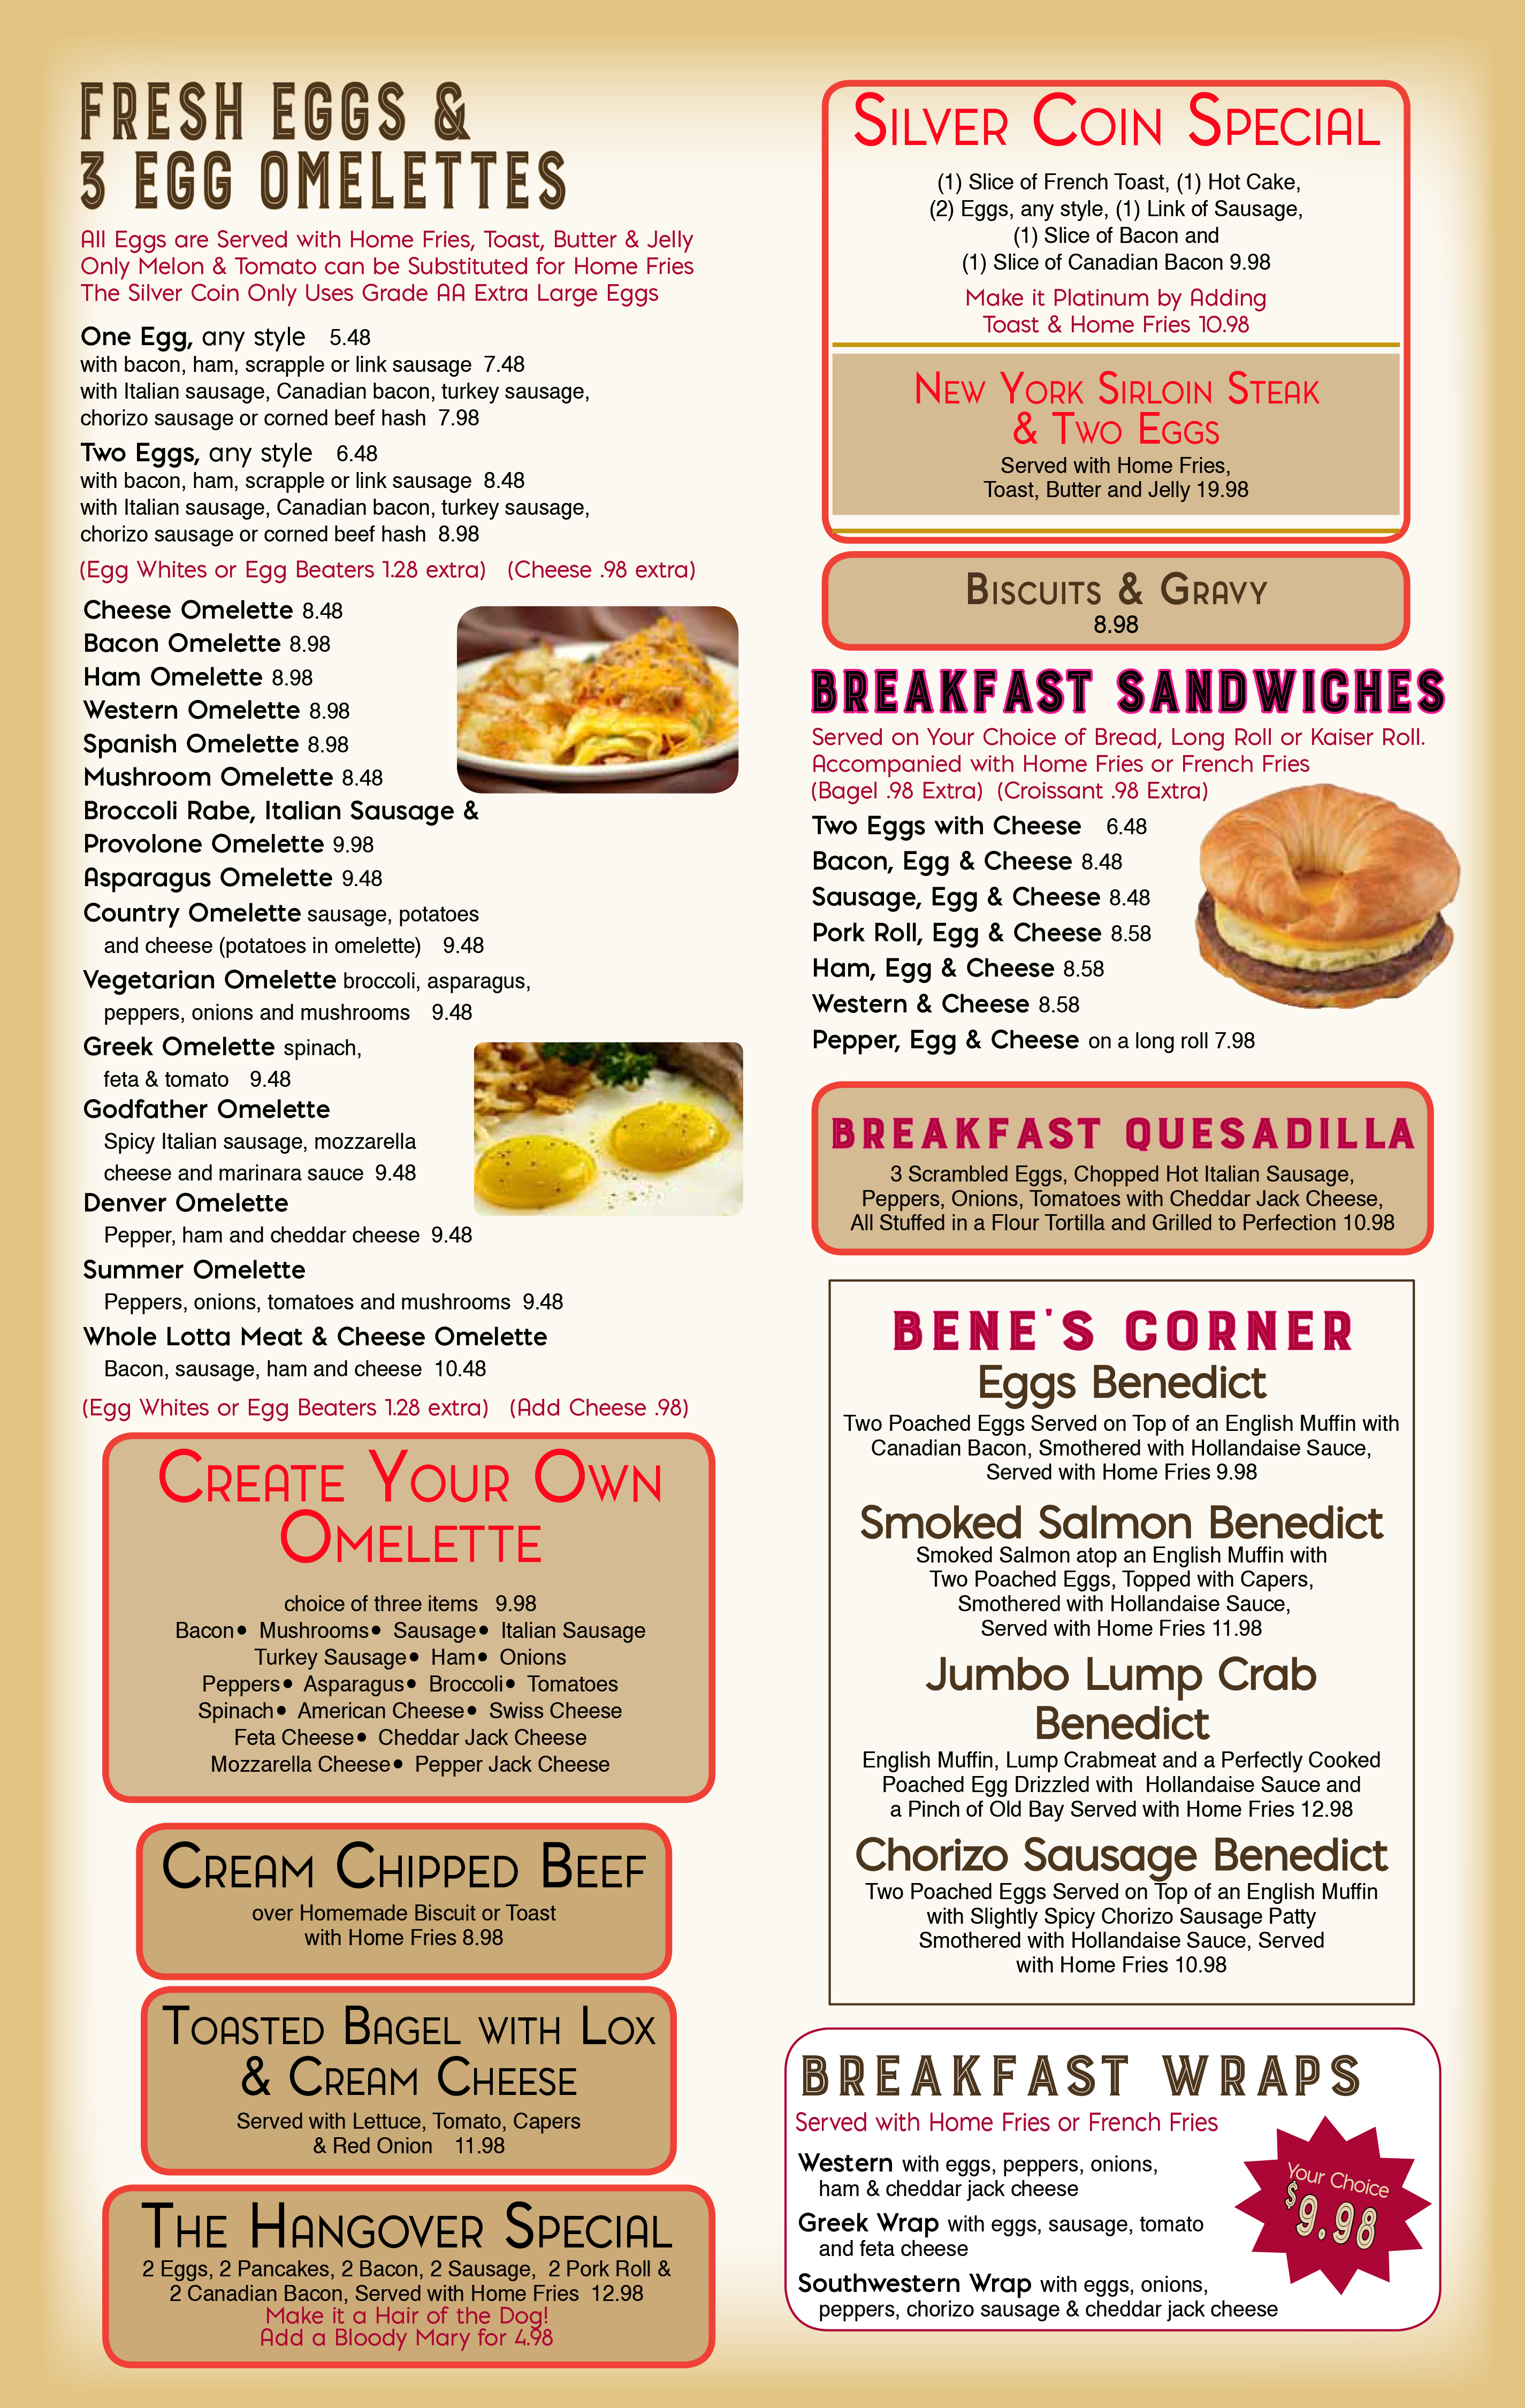 SILVER COIN BREAKFAST MENU-2